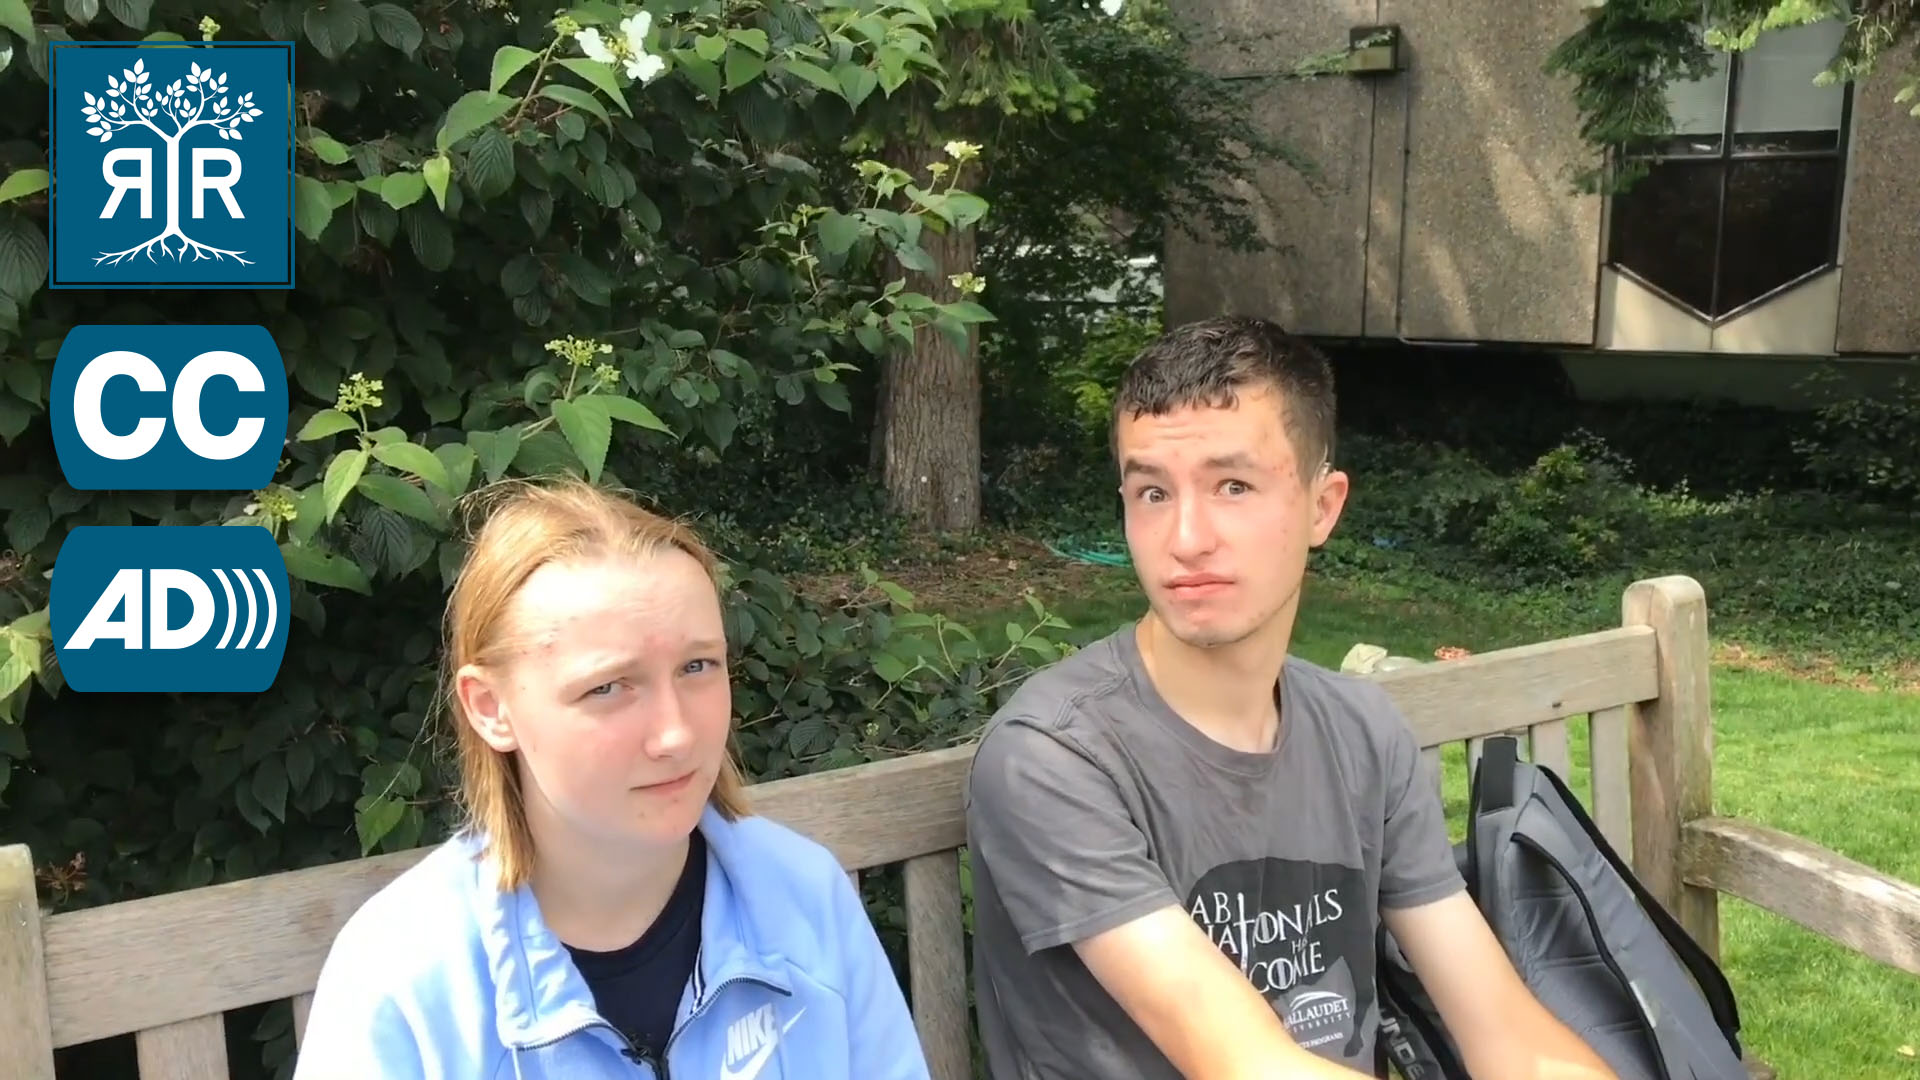 Two students on a bench grimace at the camera.